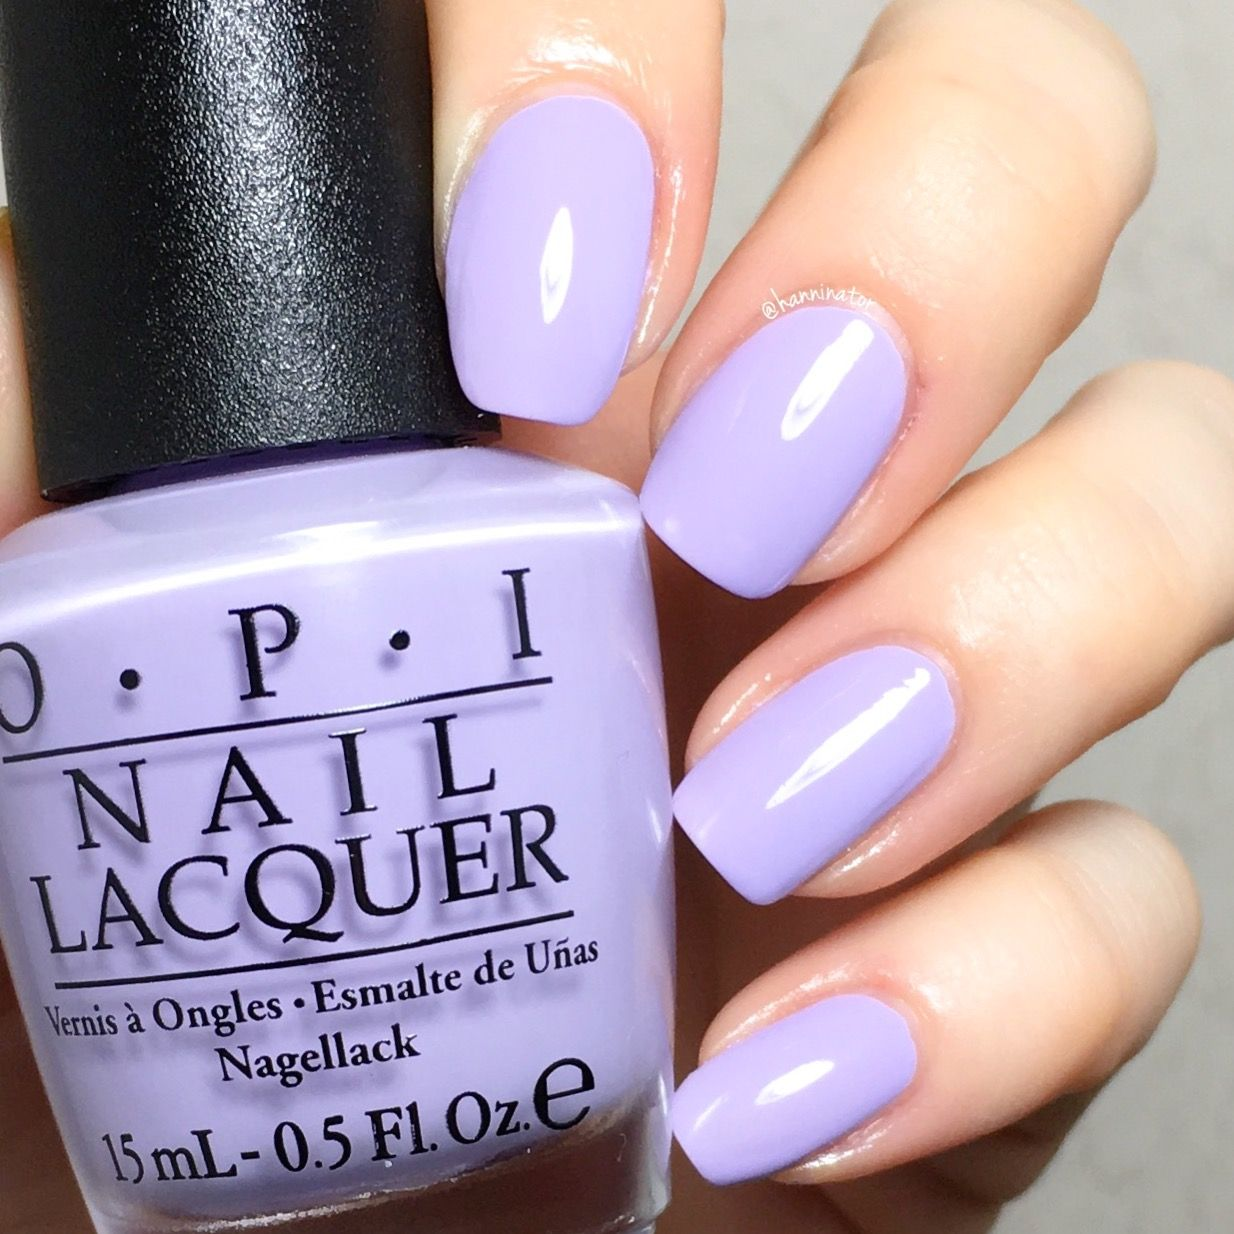 Polly want a lacquer? - OPI Fiji collection | Nails | Pinterest ...